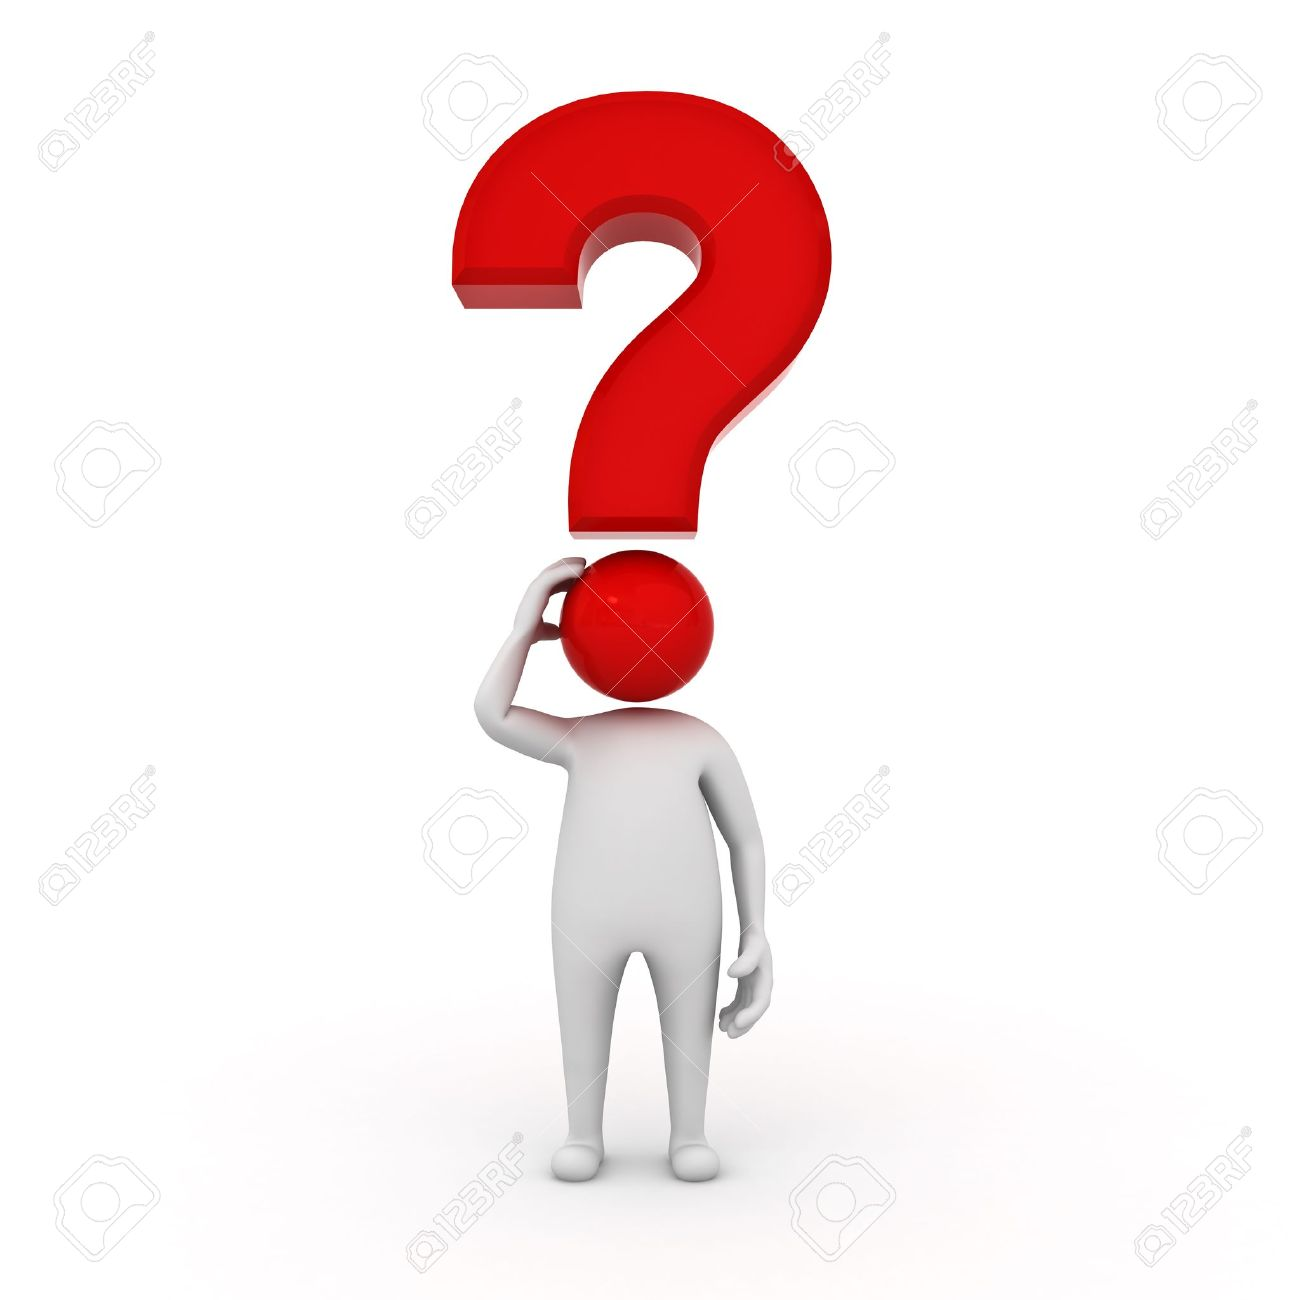 3d man character with red question mark isolated on white background 3d man character with red question mark isolated on white background stock photo 12432408 toneelgroepblik Image collections